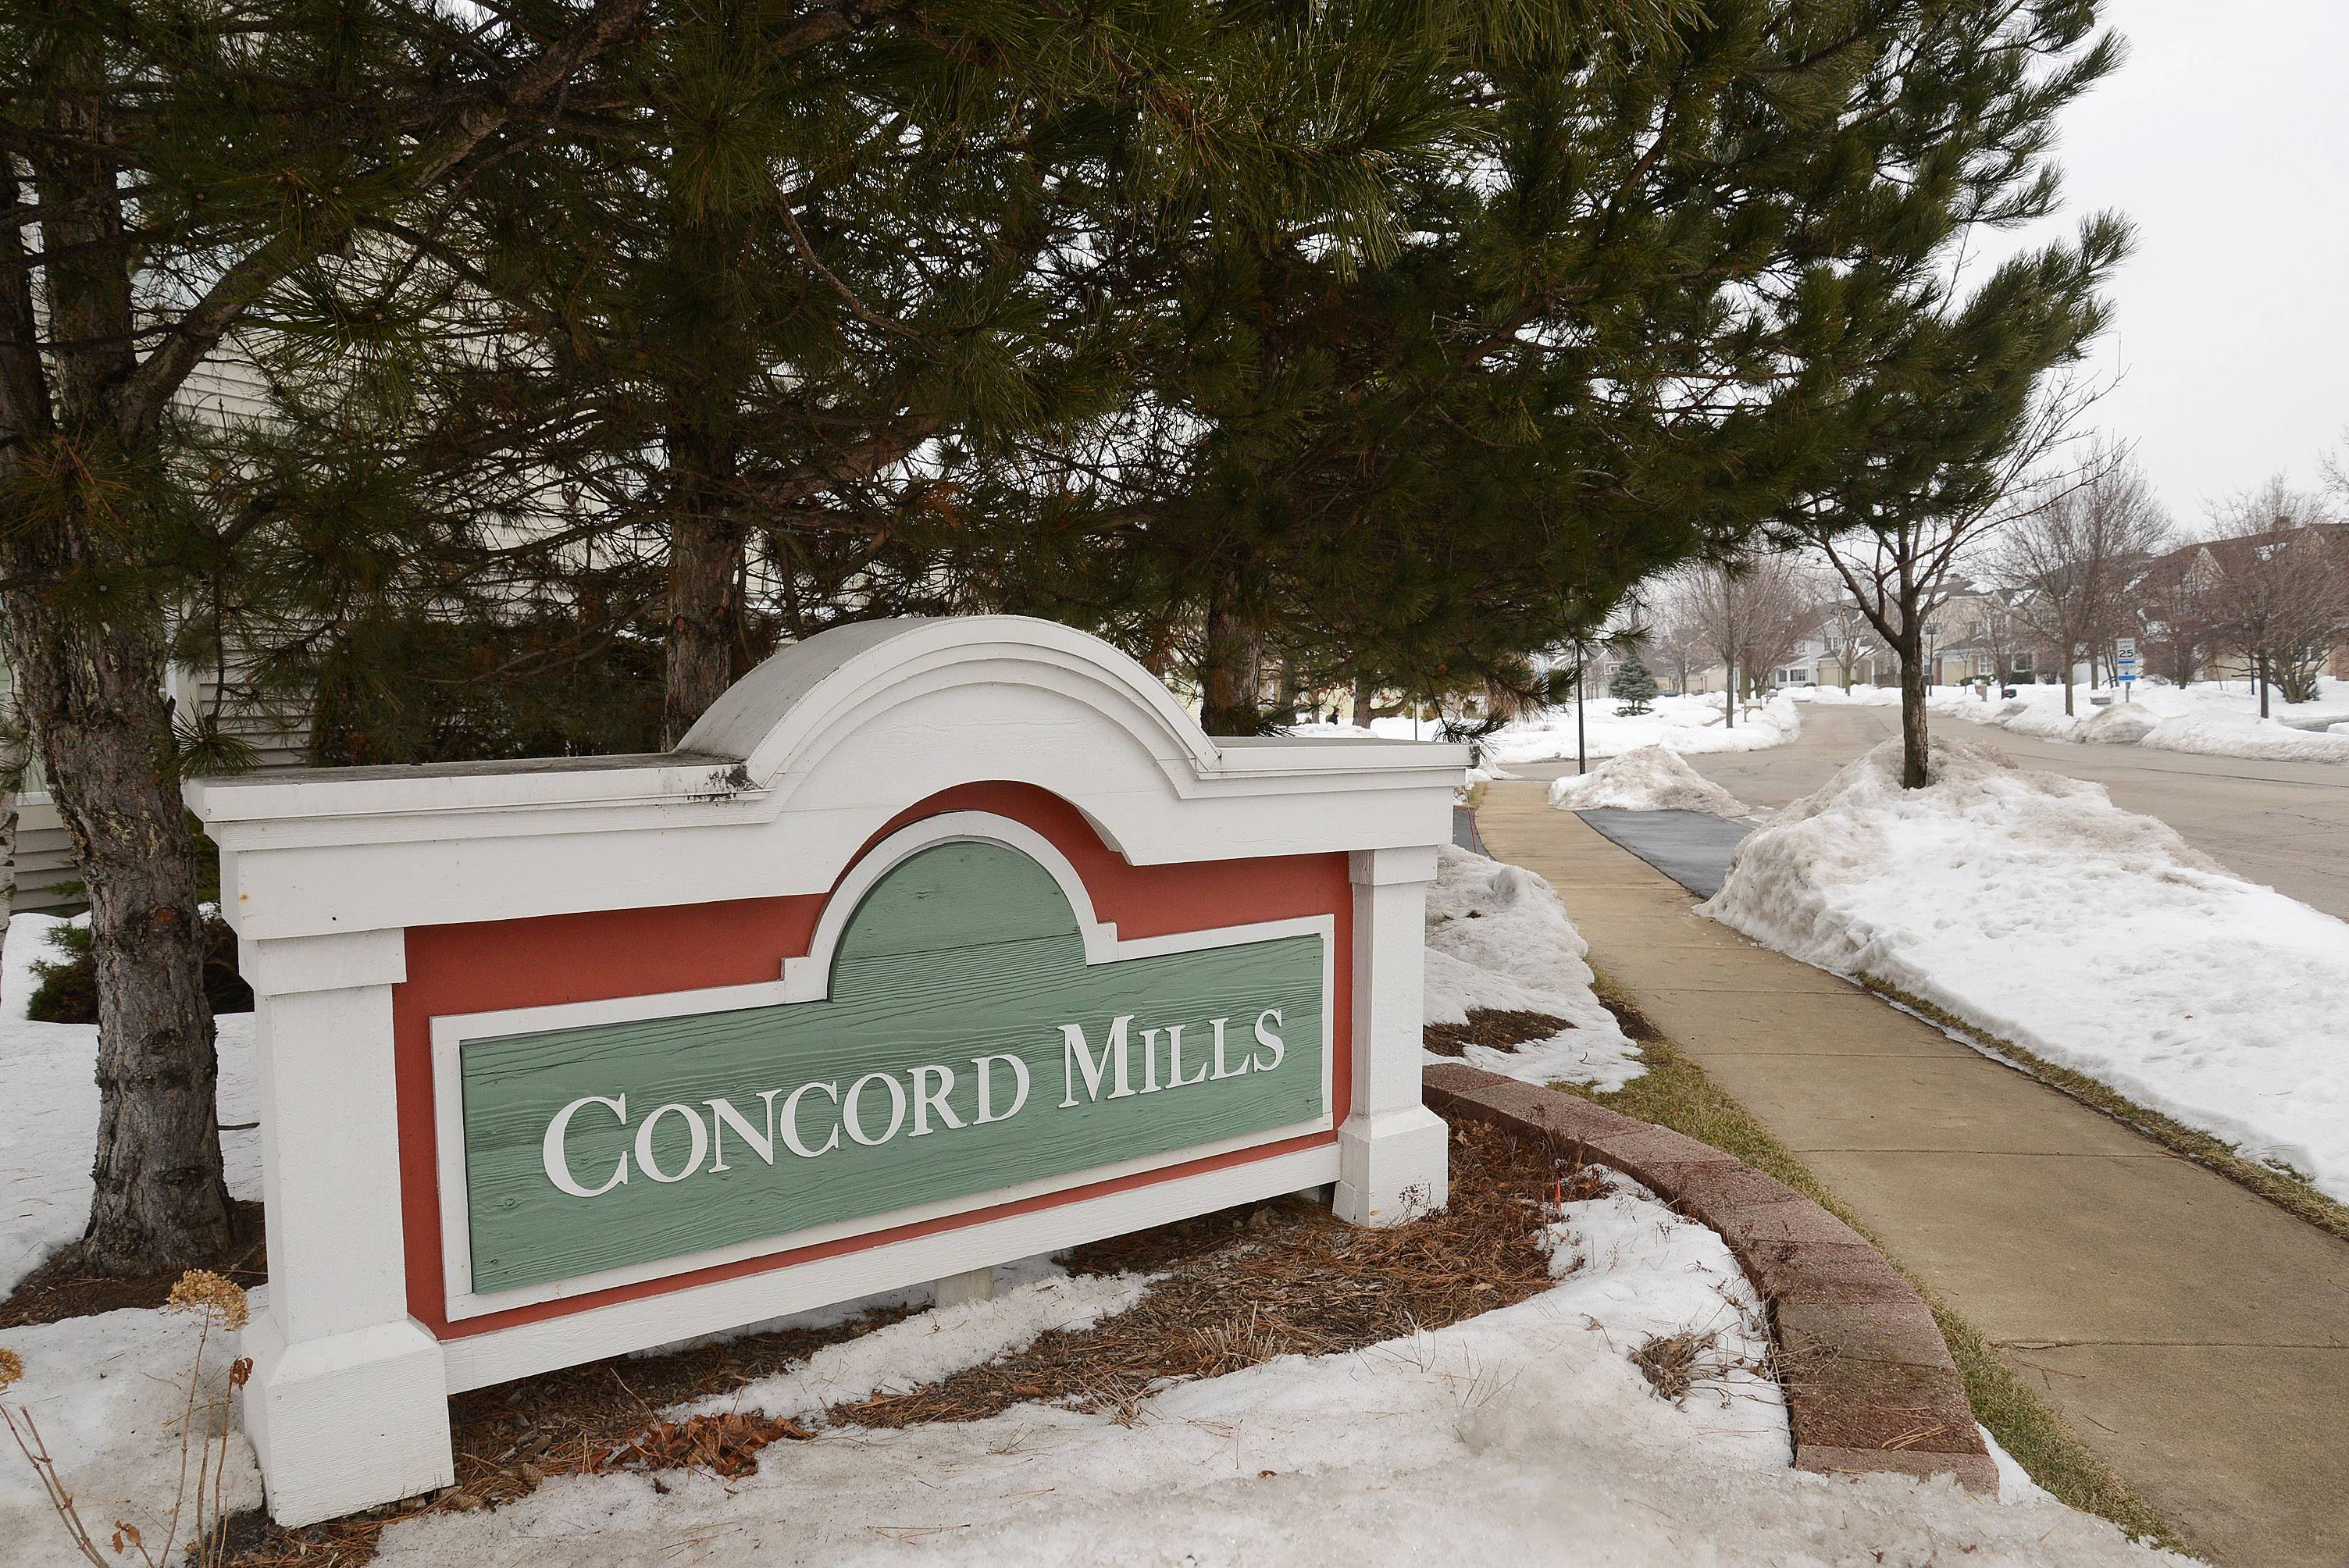 The Concord Mills neighborhood in Palatine has both single-family homes as well as townhouses.